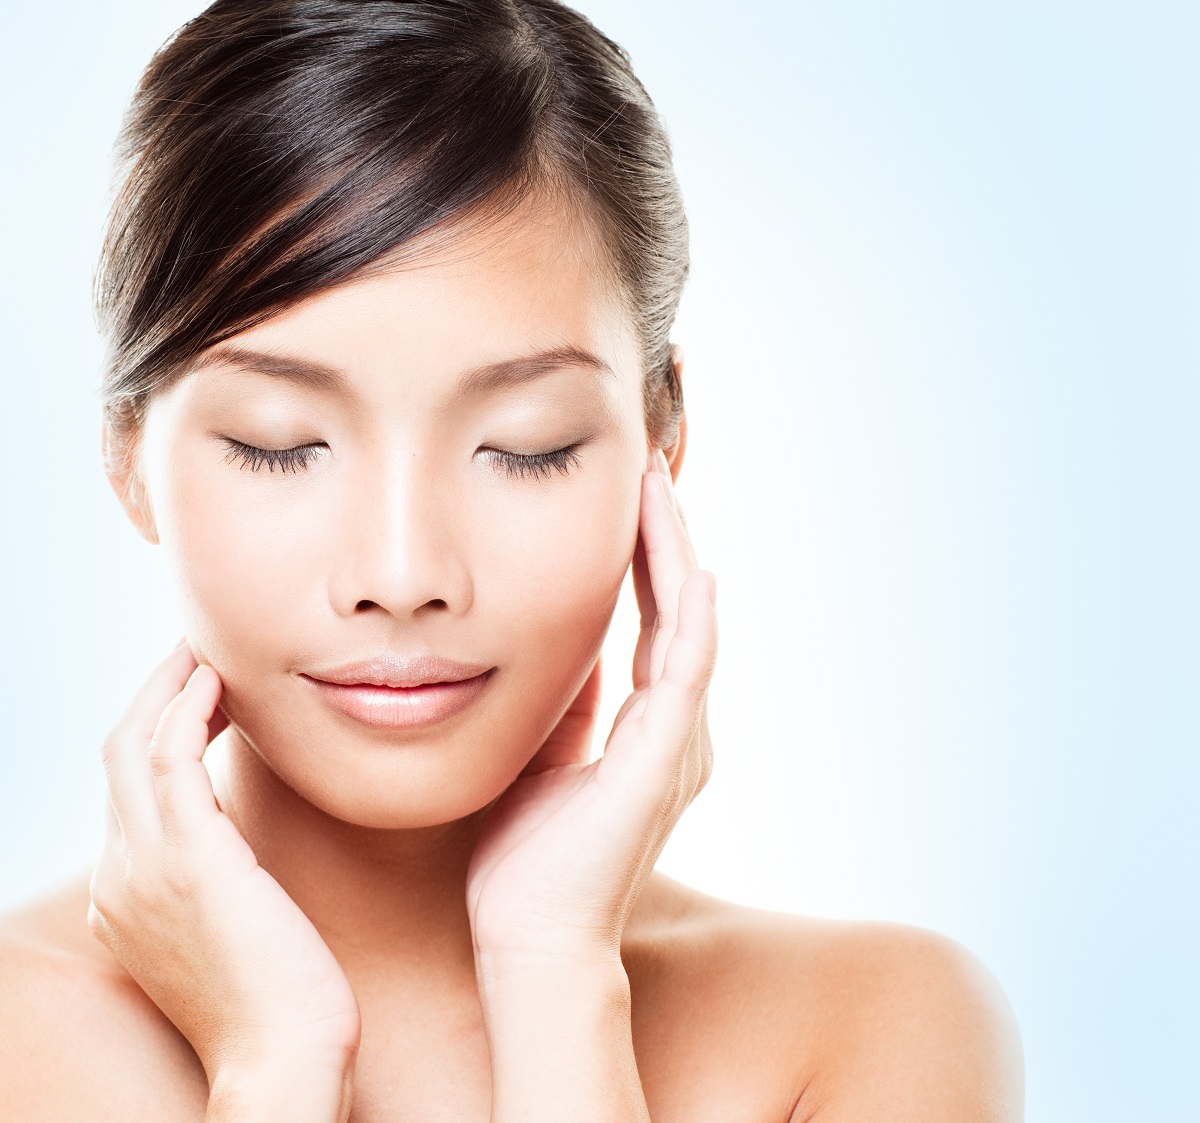 3 Common Reasons for Getting Rhinoplasty